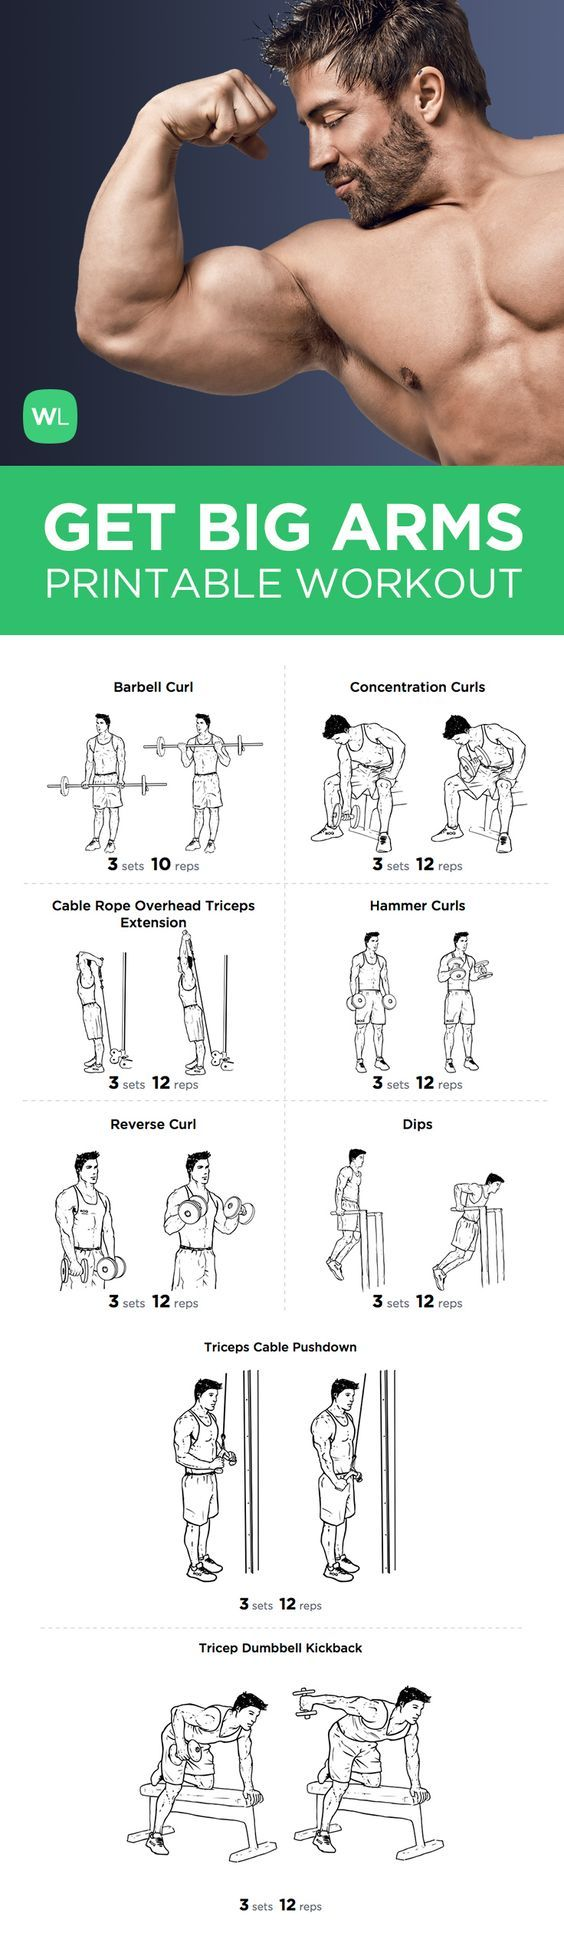 Visit Workoutlabs Workout Plans Big Arms